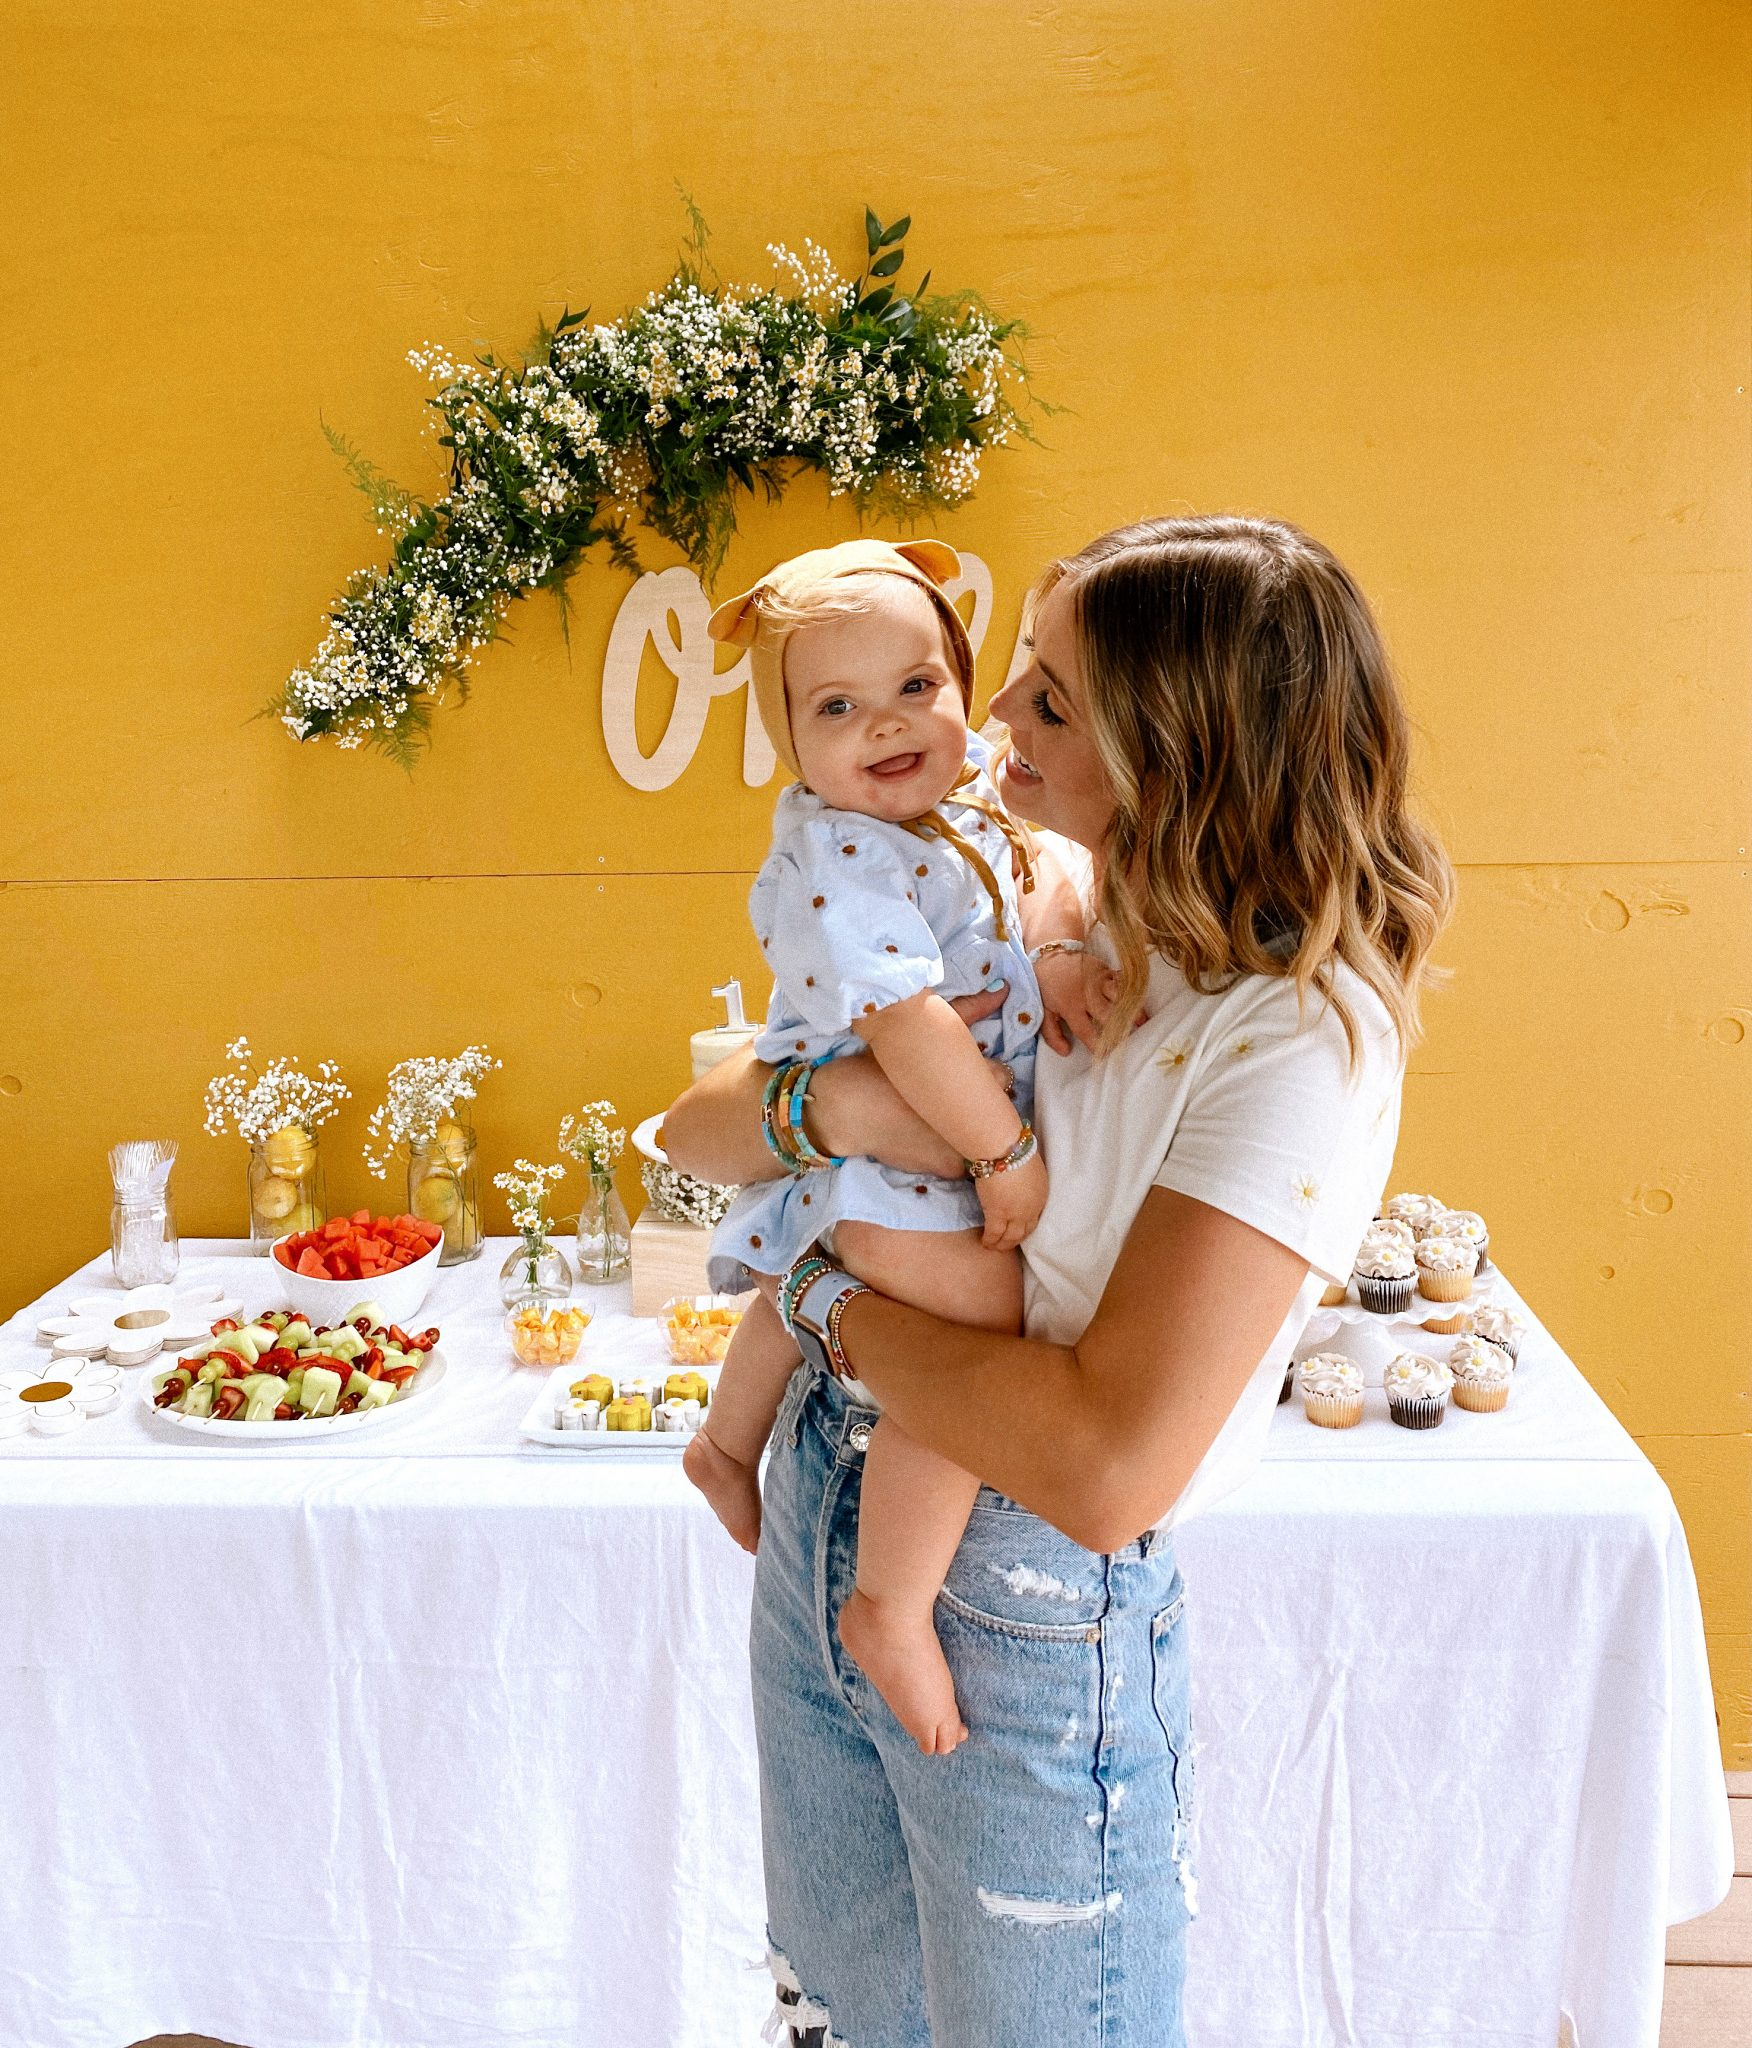 Daisy Theme Party by popular San Diego lifestyle blog, Navy Grace: image of a mustard yellow backdrop, wooden 'one' sign, daisy garland, food table with a cake, daisy shaped cakes, fruit skewers, vases filled with baby's breath and daisies, and daisy cupcakes and a Mom wearing a Sezane Evan t-shirt, Anthropologie Gemma slides, Agolde Jeans, and Anthropologie stack bracelets holding a one year old baby wearing a blue daisy print Zara dress and Briar Baby Honey Bear bonnet.